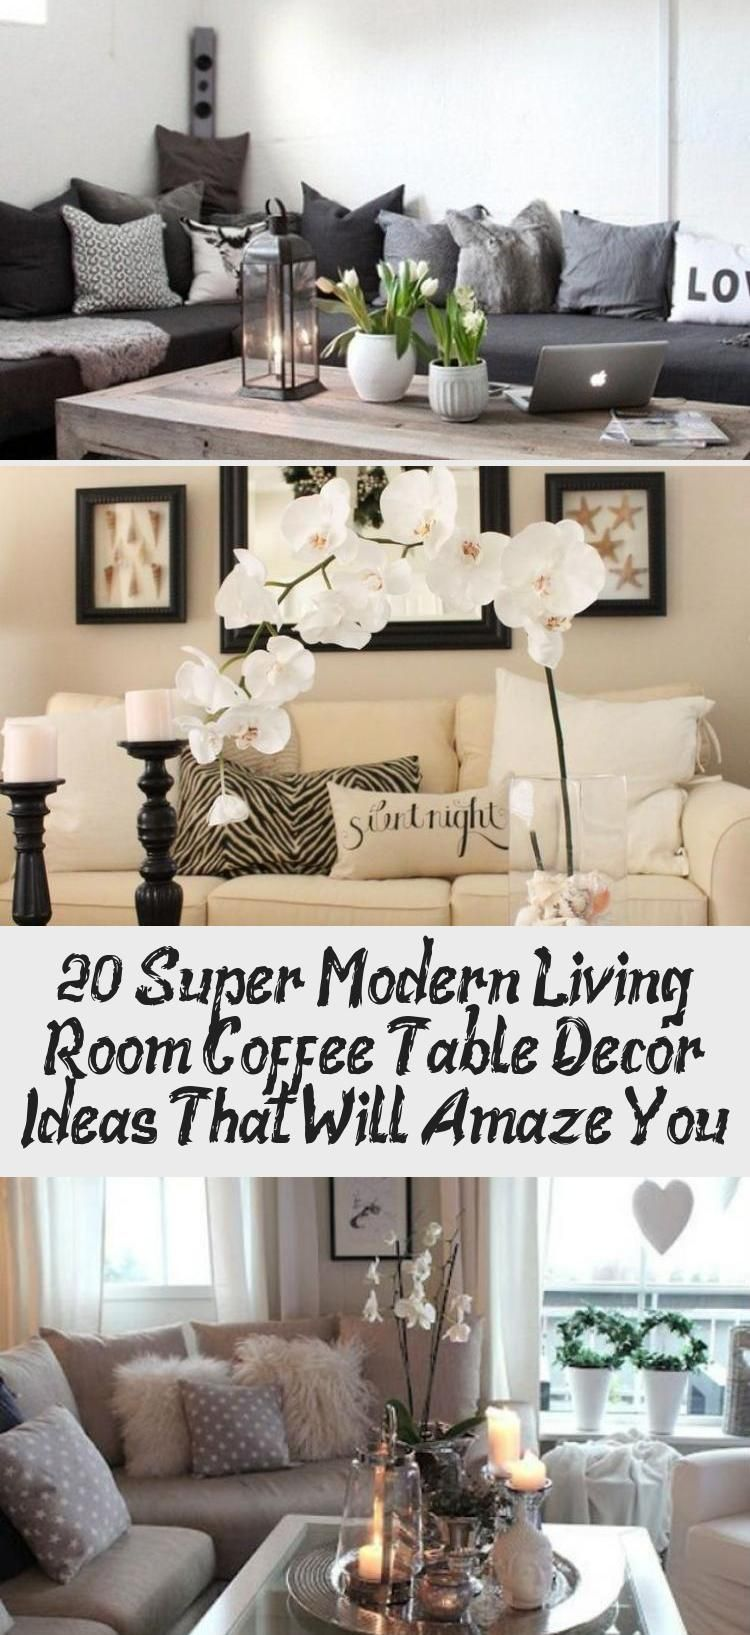 20 Super Modern Living Room Coffee Table Decor Ideas That Will Amaze You With Images Table Decor Living Room Modern Living Room Table Coffee Table Living Room Modern